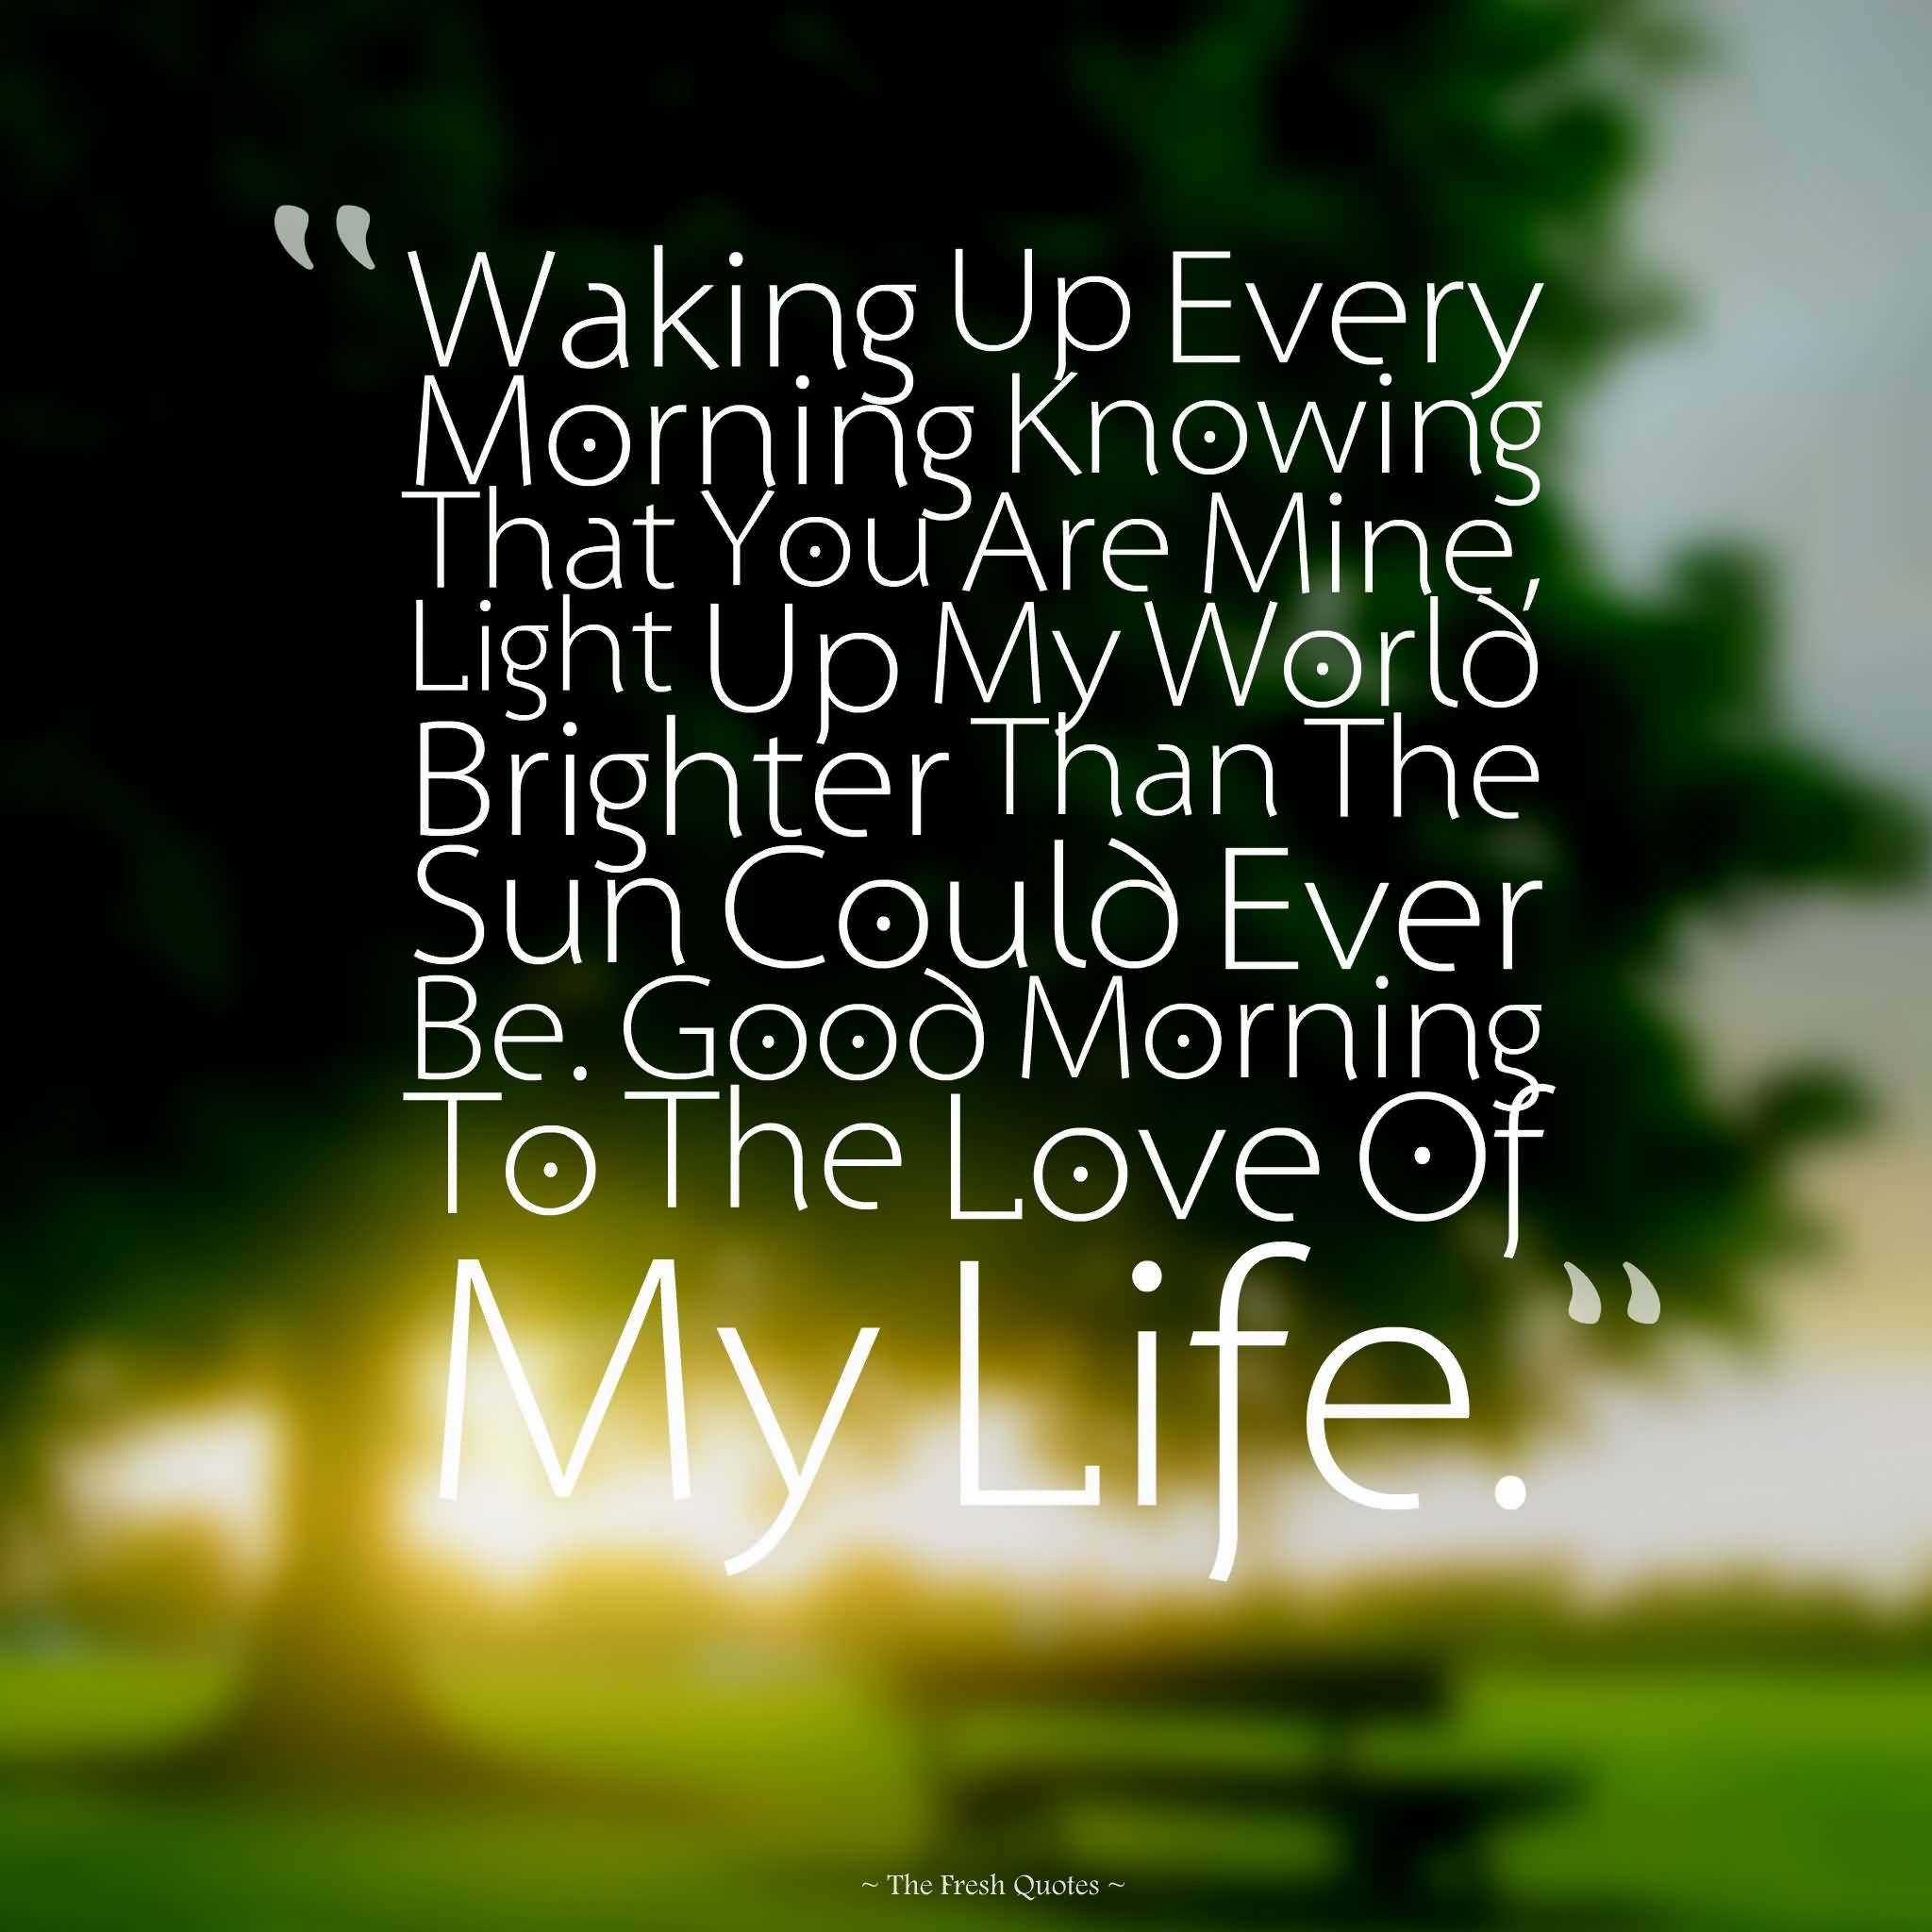 Good Morning My Love Quotes For Him 02